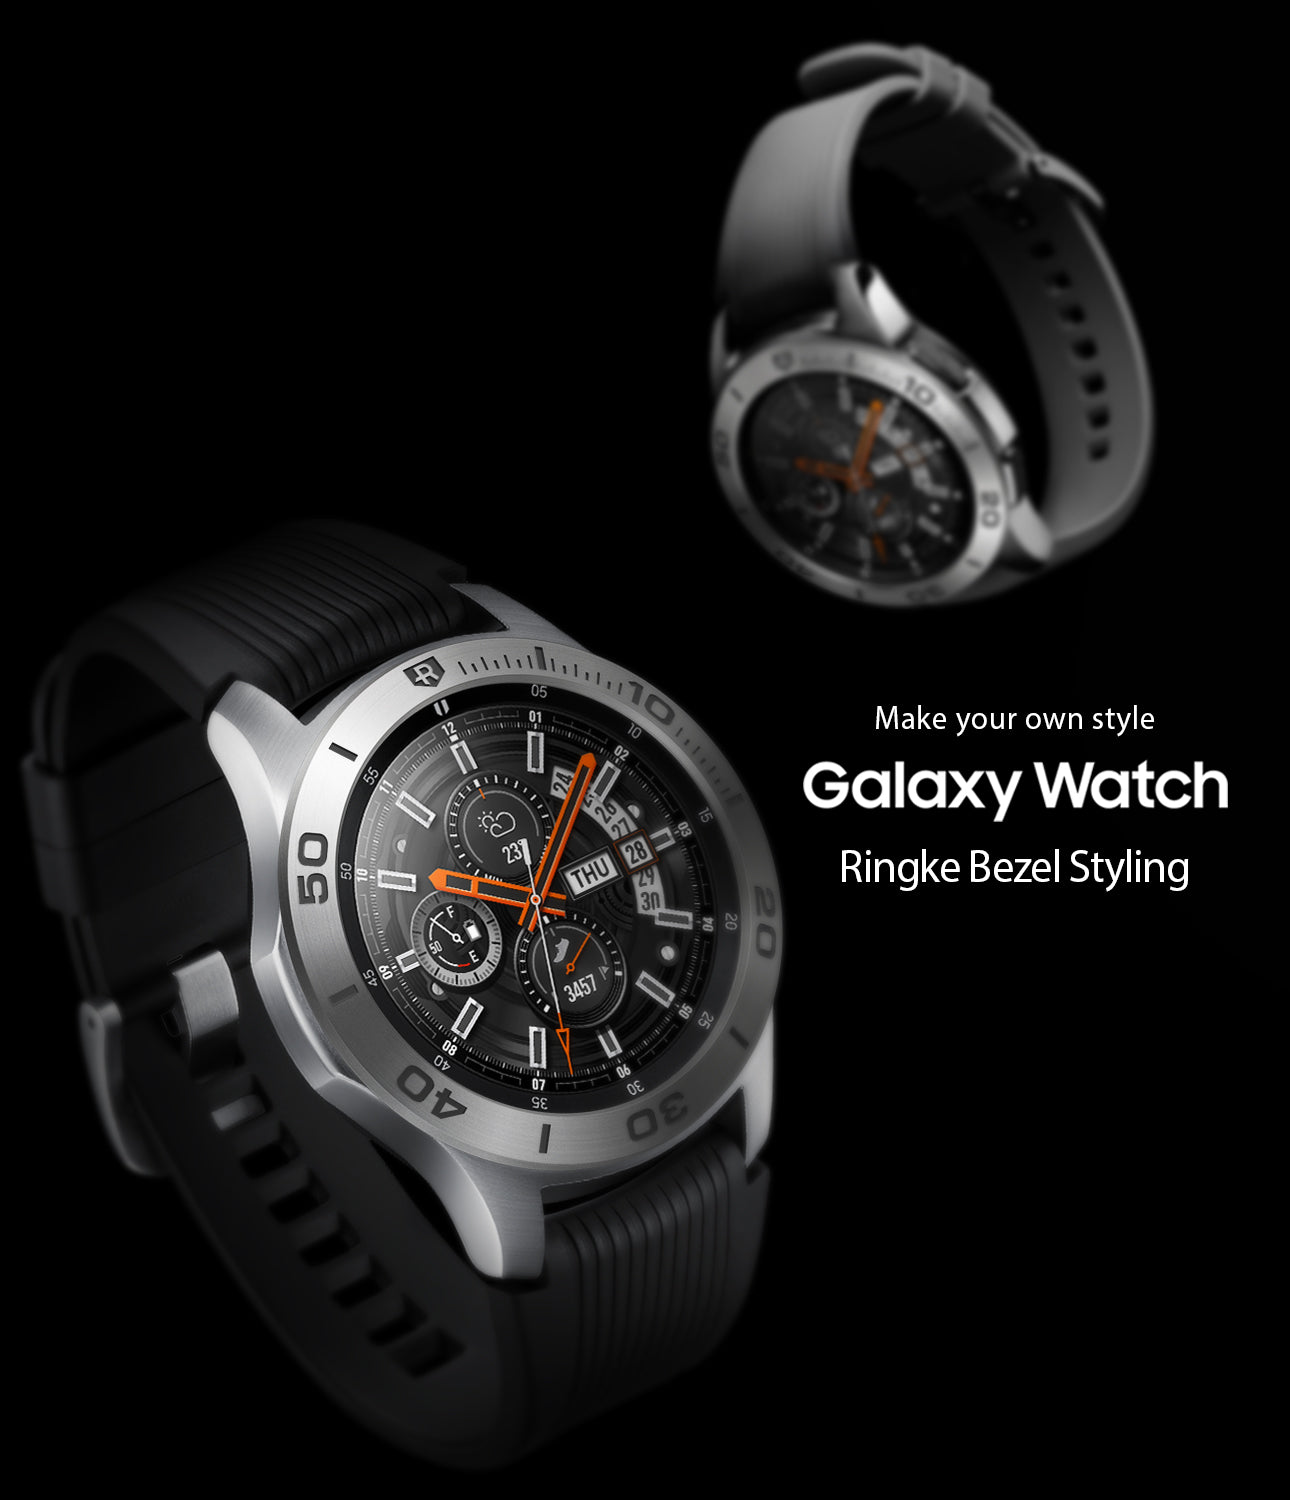 ringke bezel styling for samsung galaxy watch 46mm silver stainless steel